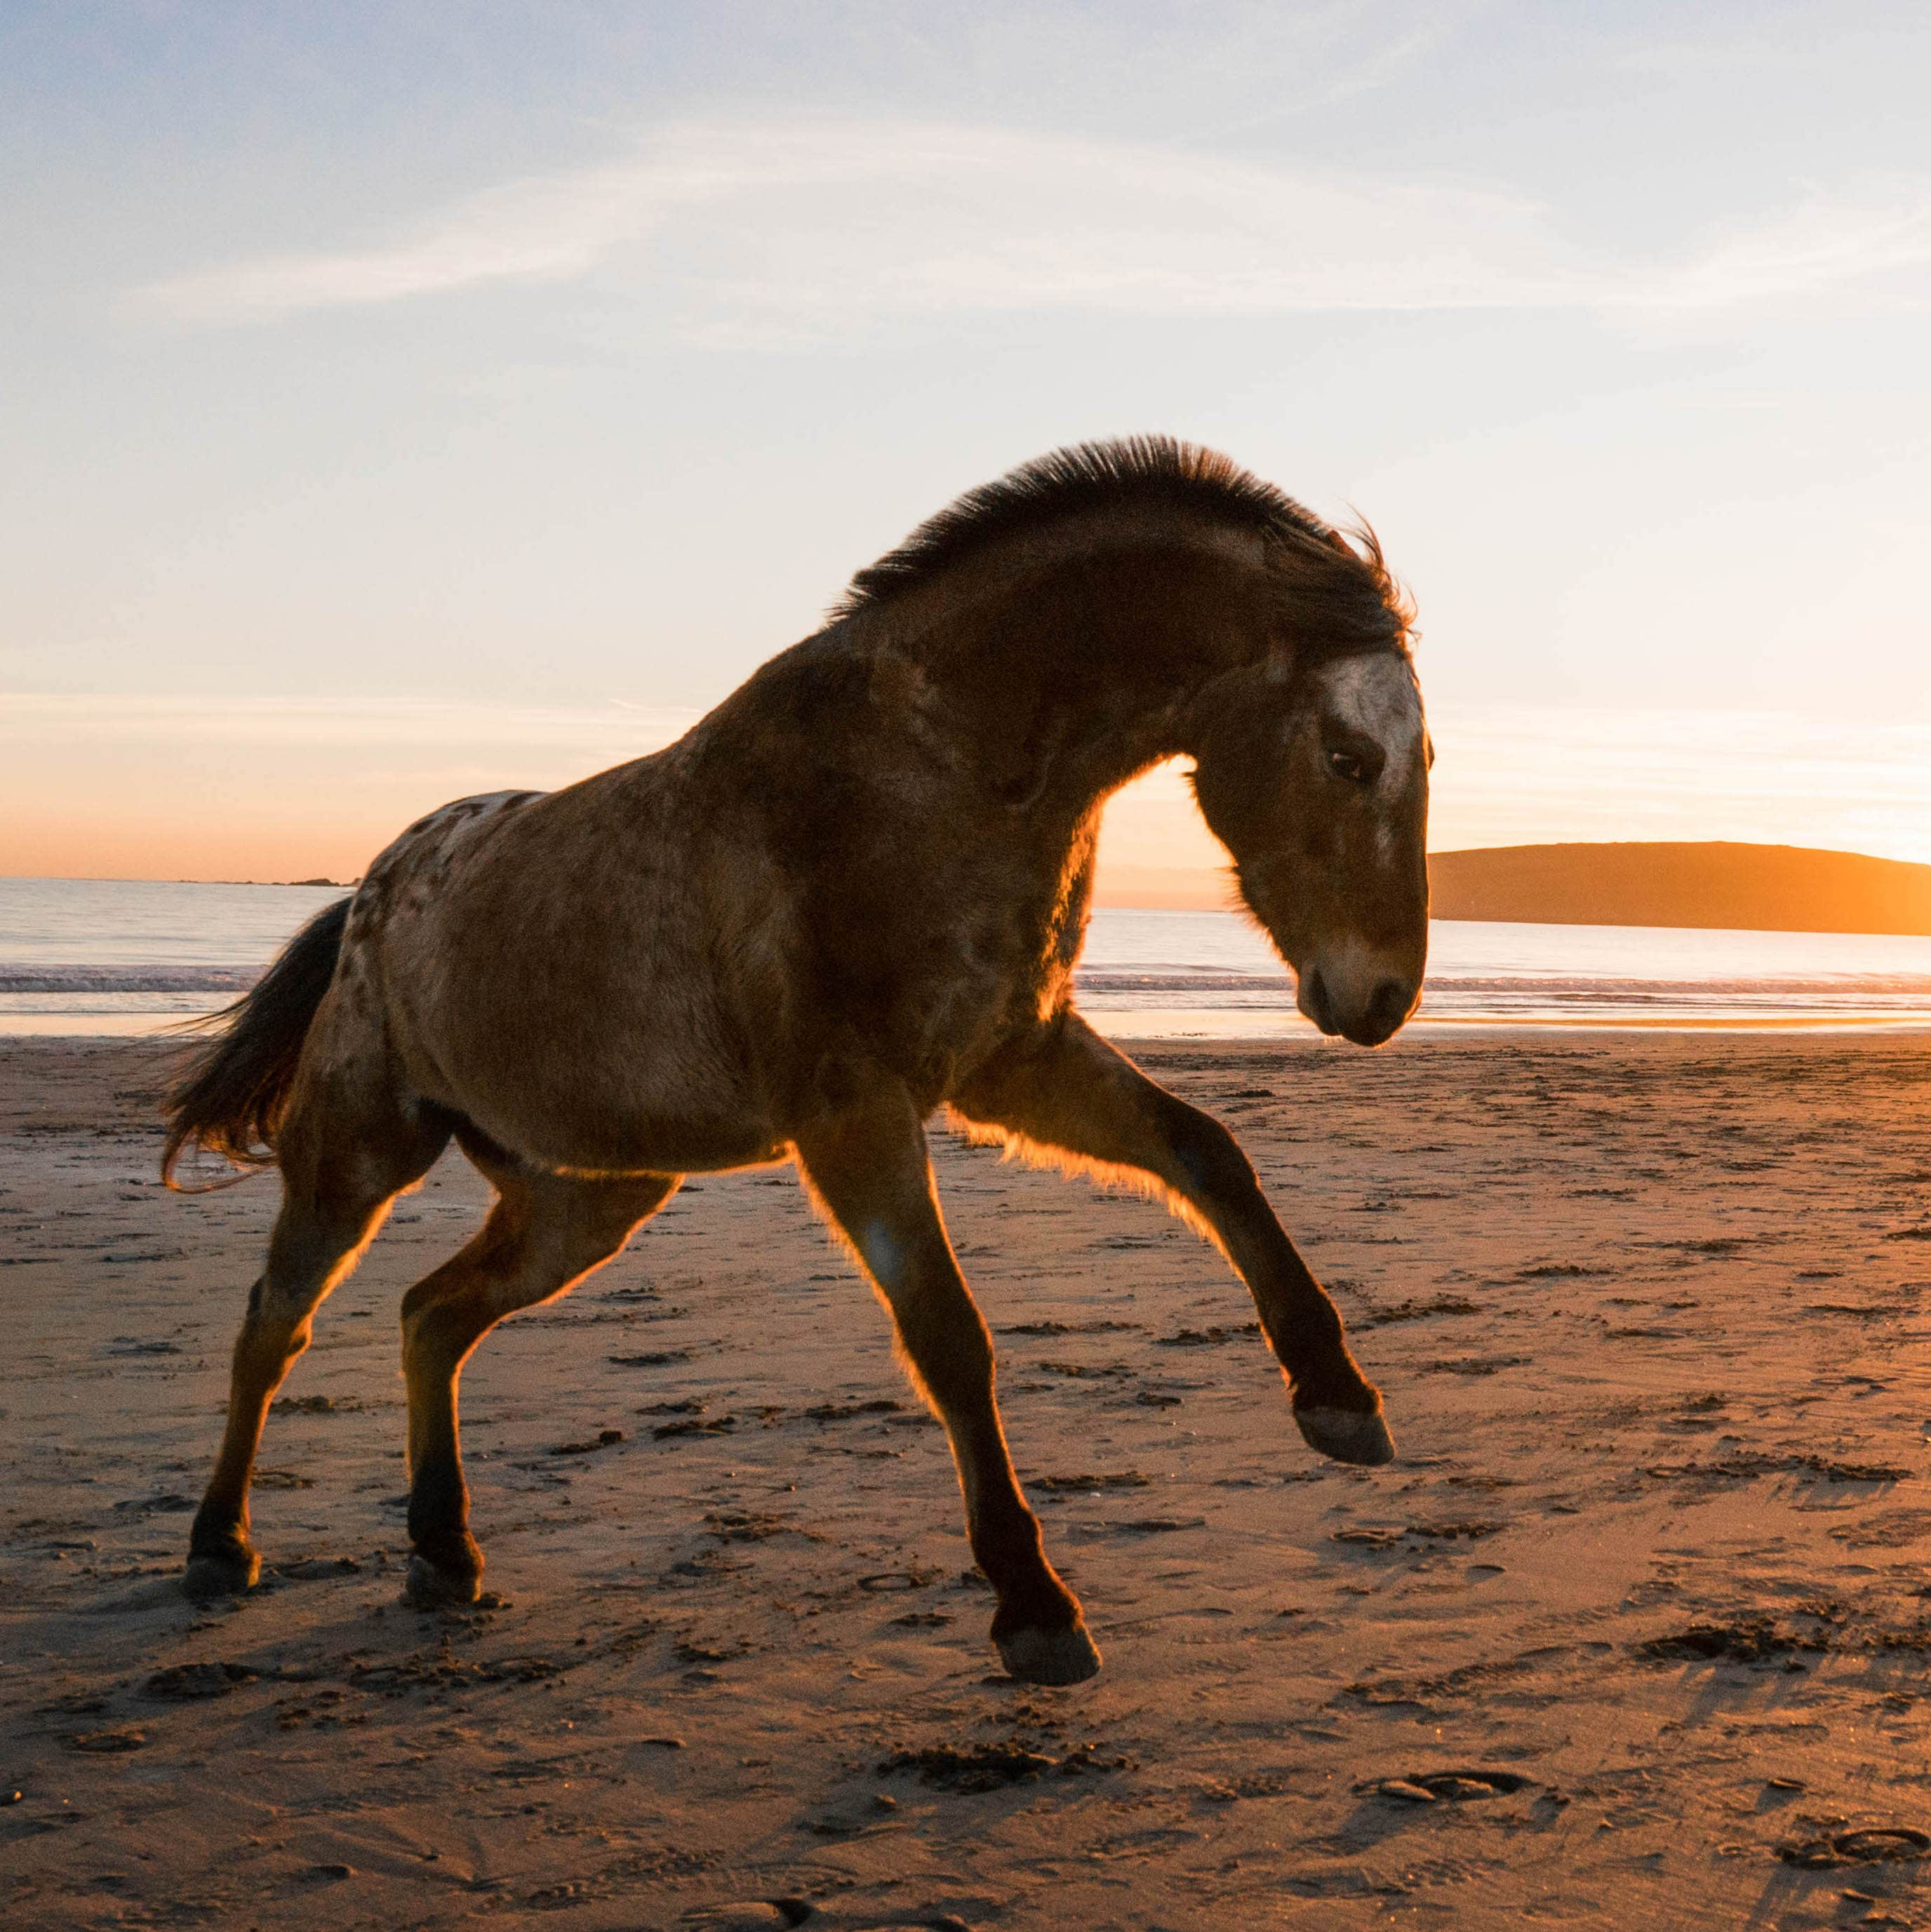 Dancing with Horses - mustang on the beach